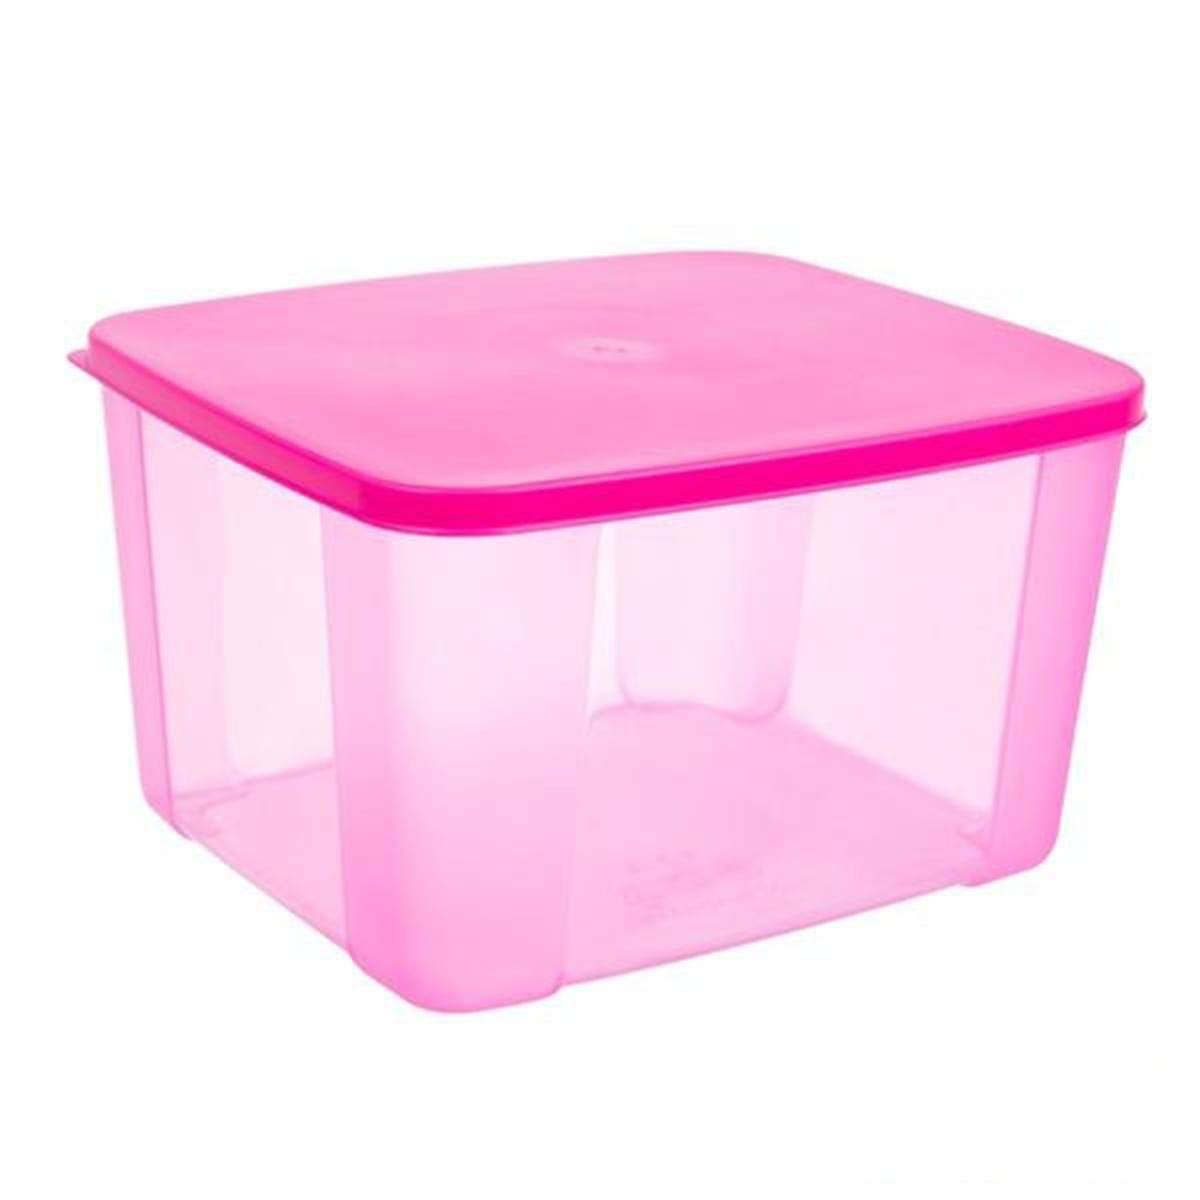 0109 Food Container 4.3L